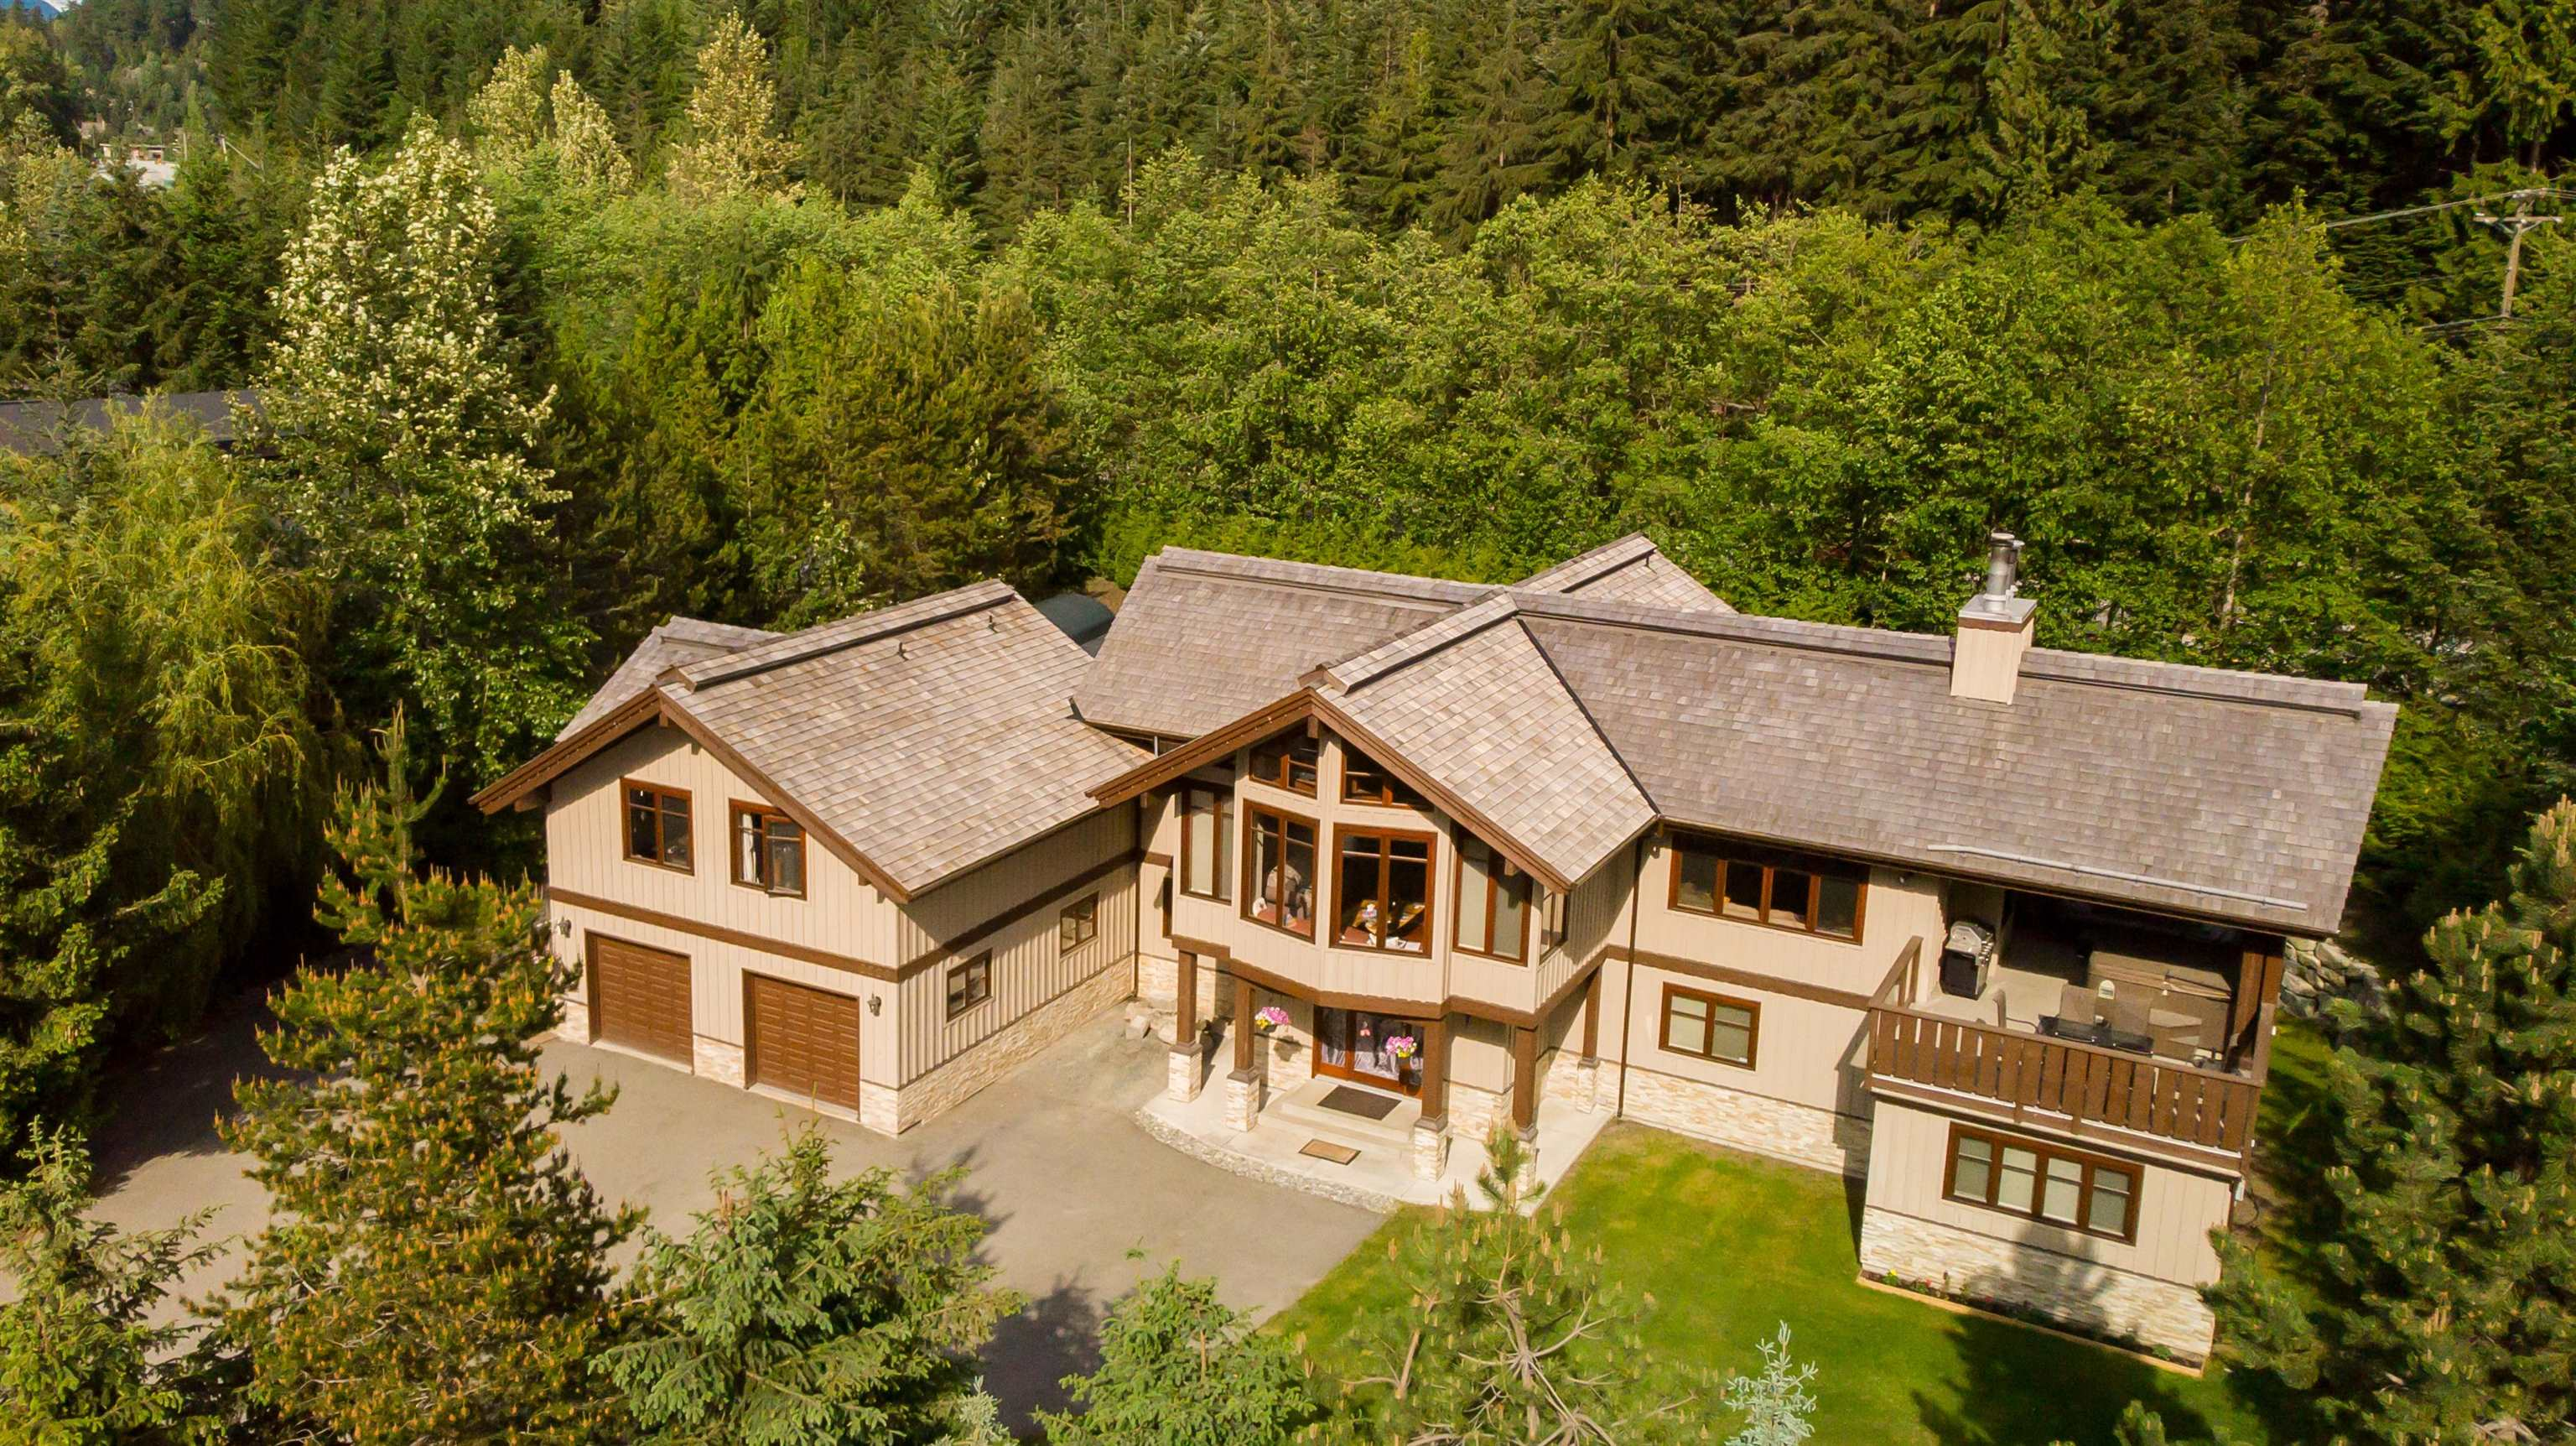 2220 LAKE PLACID ROAD - Whistler Creek House/Single Family for sale, 5 Bedrooms (R2610474)